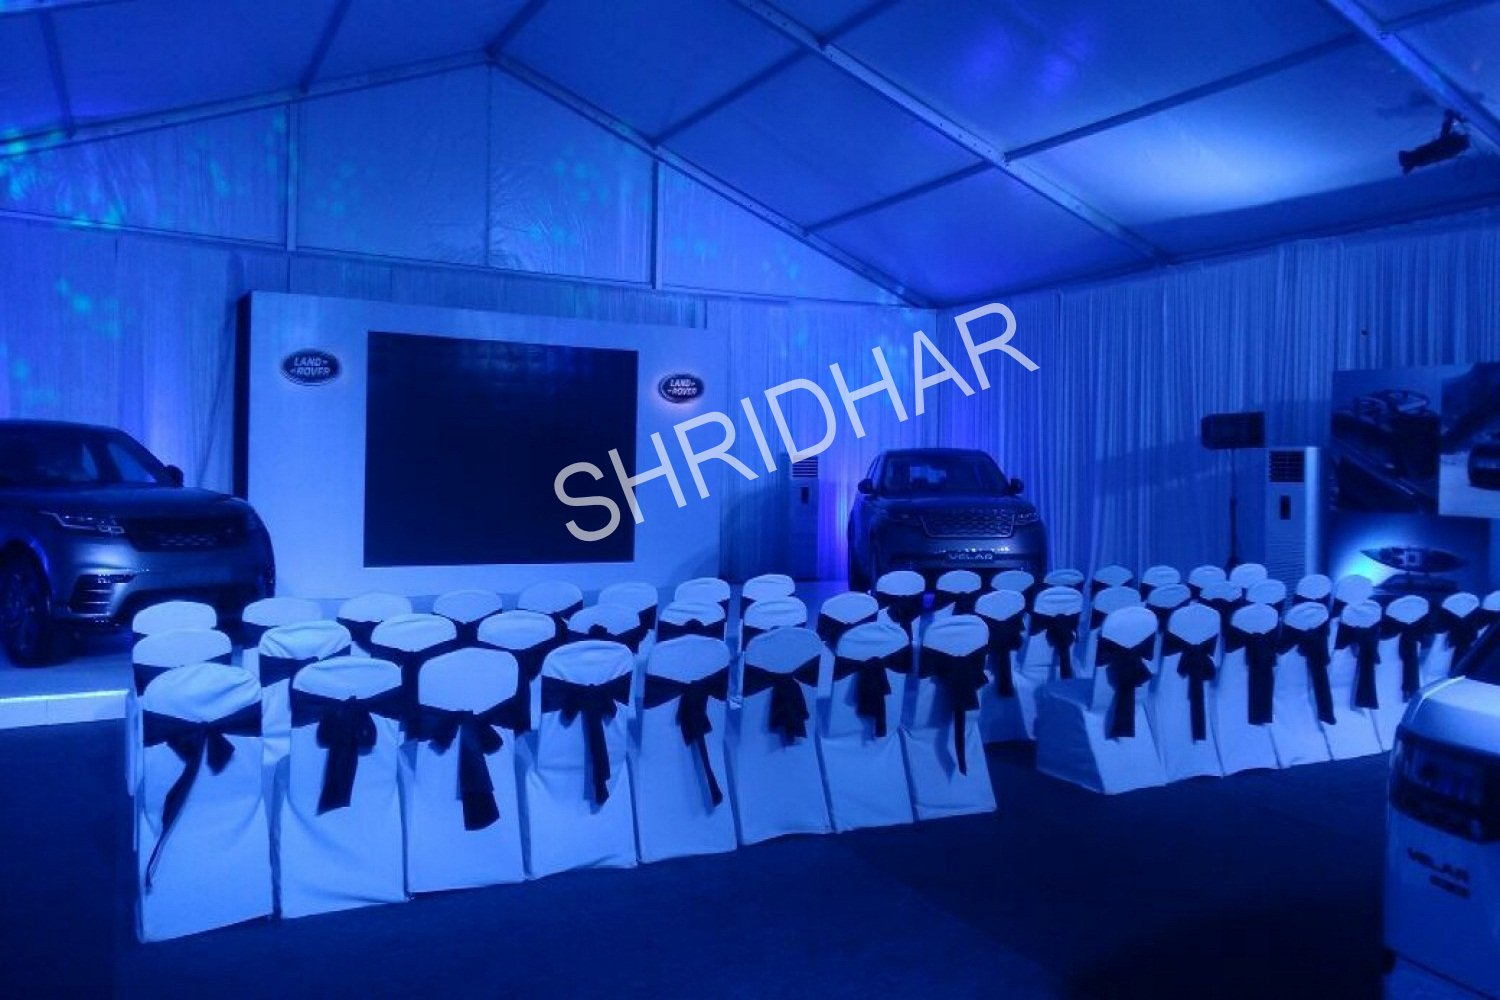 led lighting tents and chairs for rent for conferences in bangalore shridhar tent house